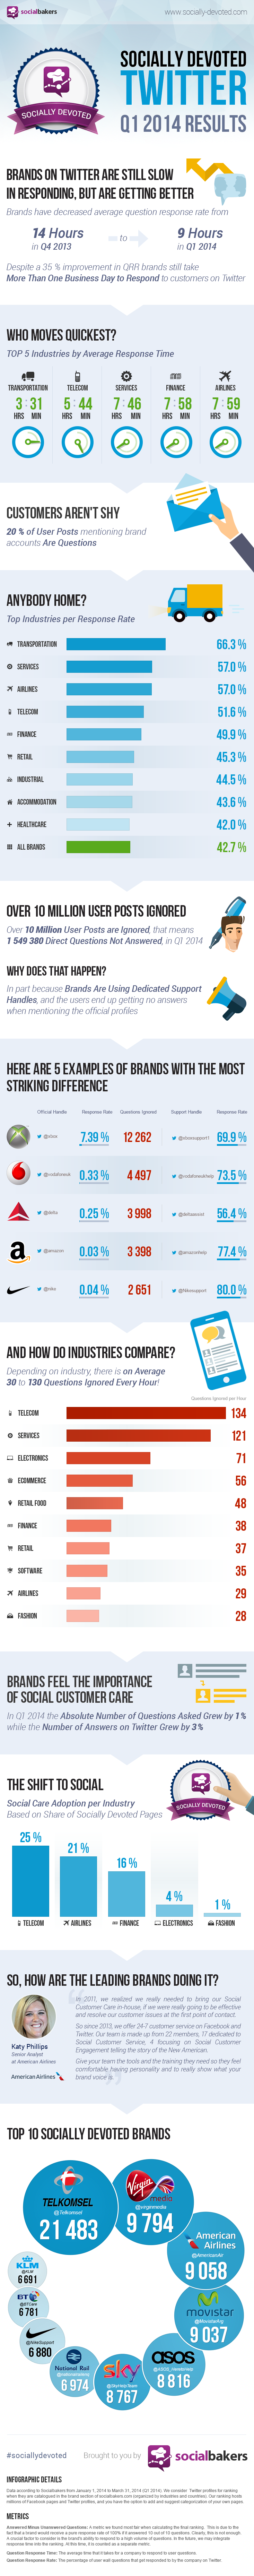 Infographie 110 - sociallydevoted-q1-2014-twitter